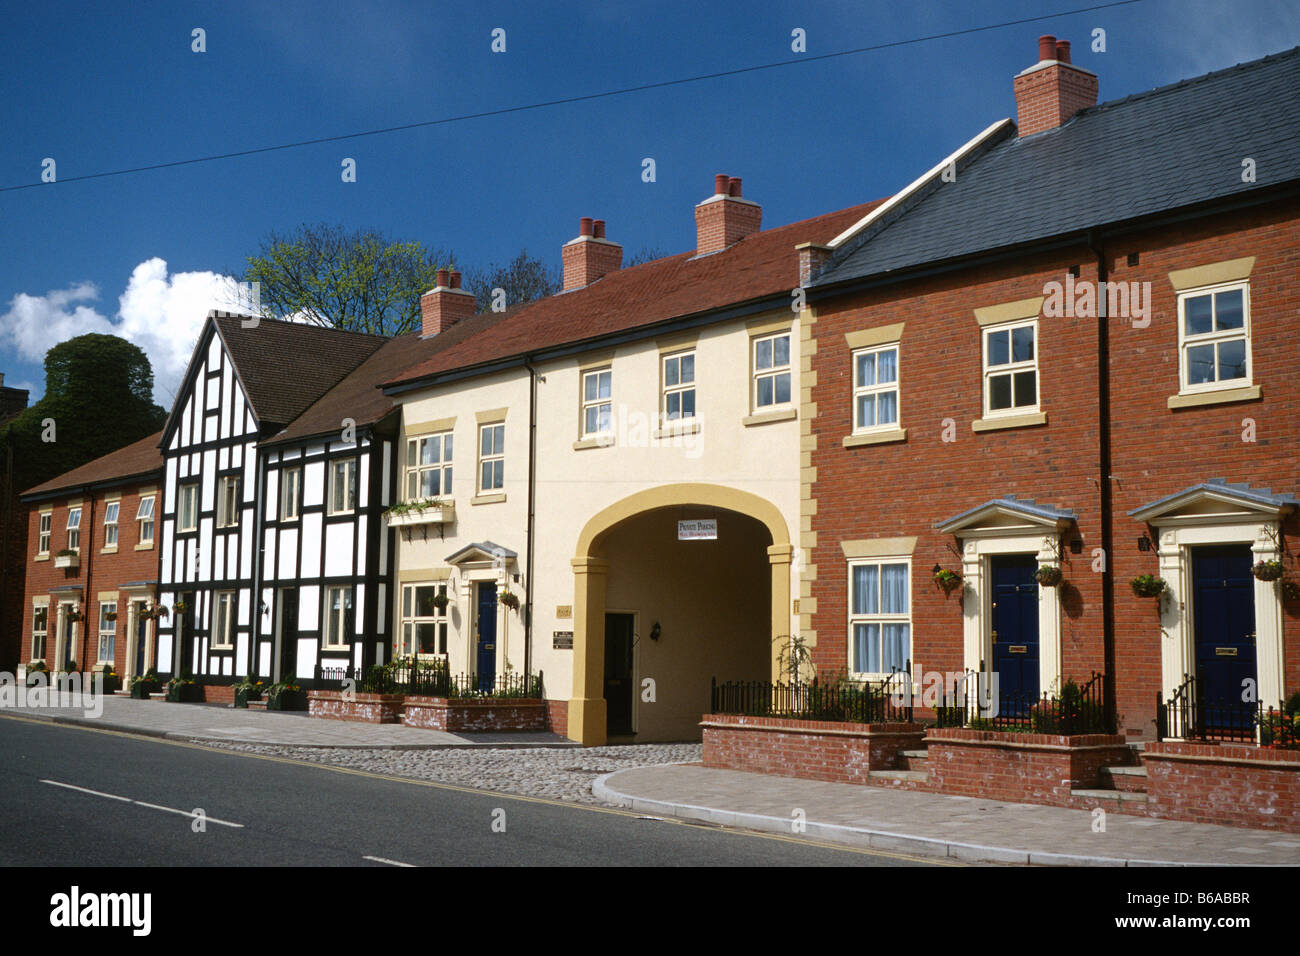 Houses in Welsh Row, Nantwich, Cheshire Stock Photo